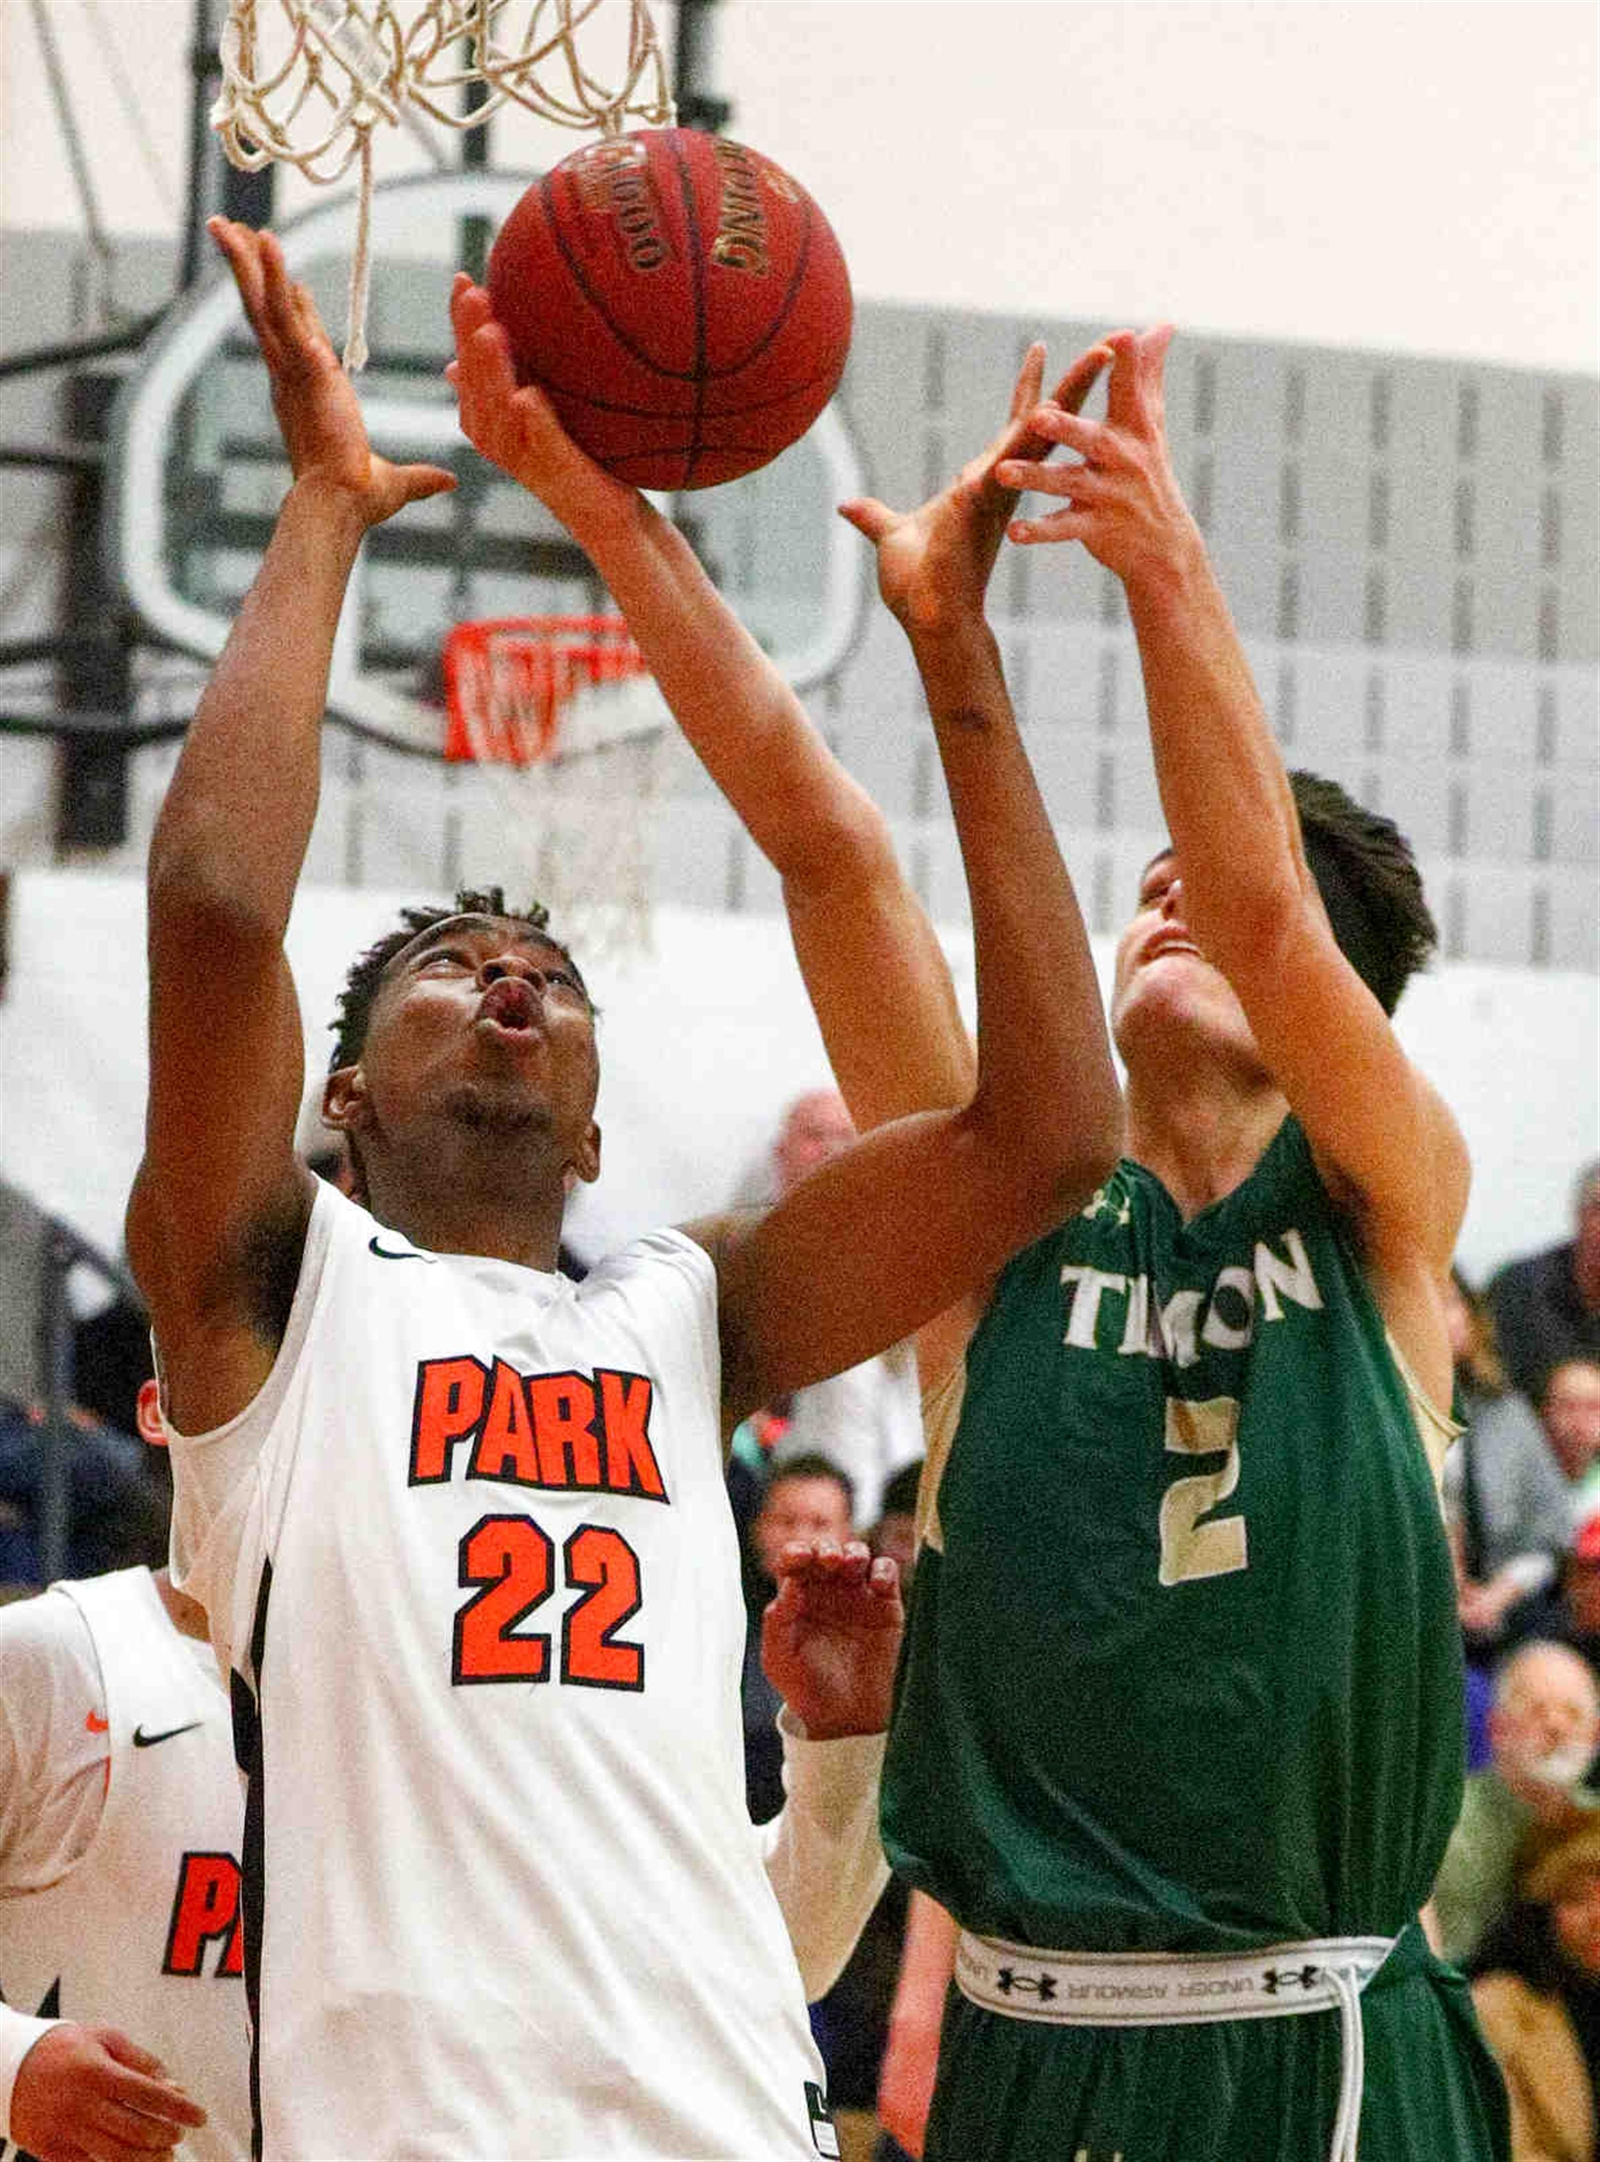 Timon's Alero World battles for the rebound against Park's  John Ese Orogun.